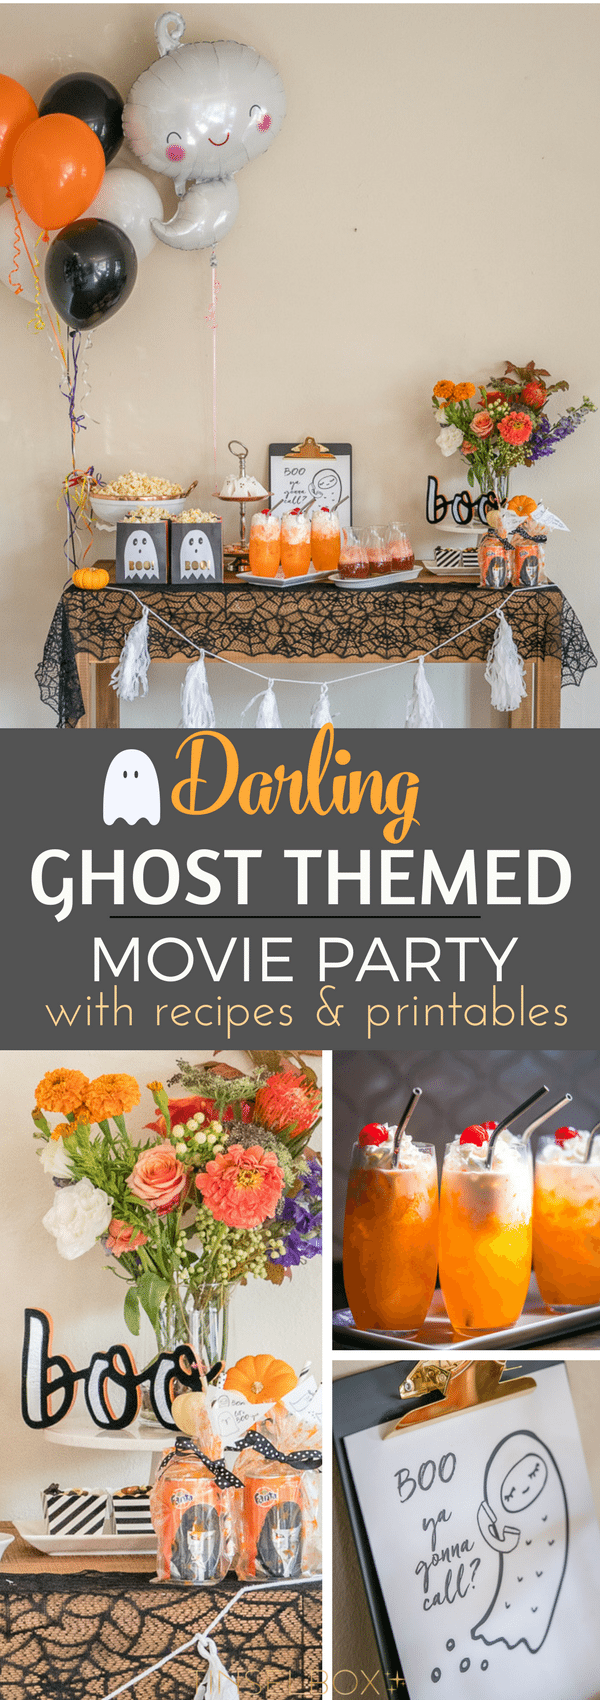 Darling Ghost themed movie party with Italian Cream Orange Soda Recipe